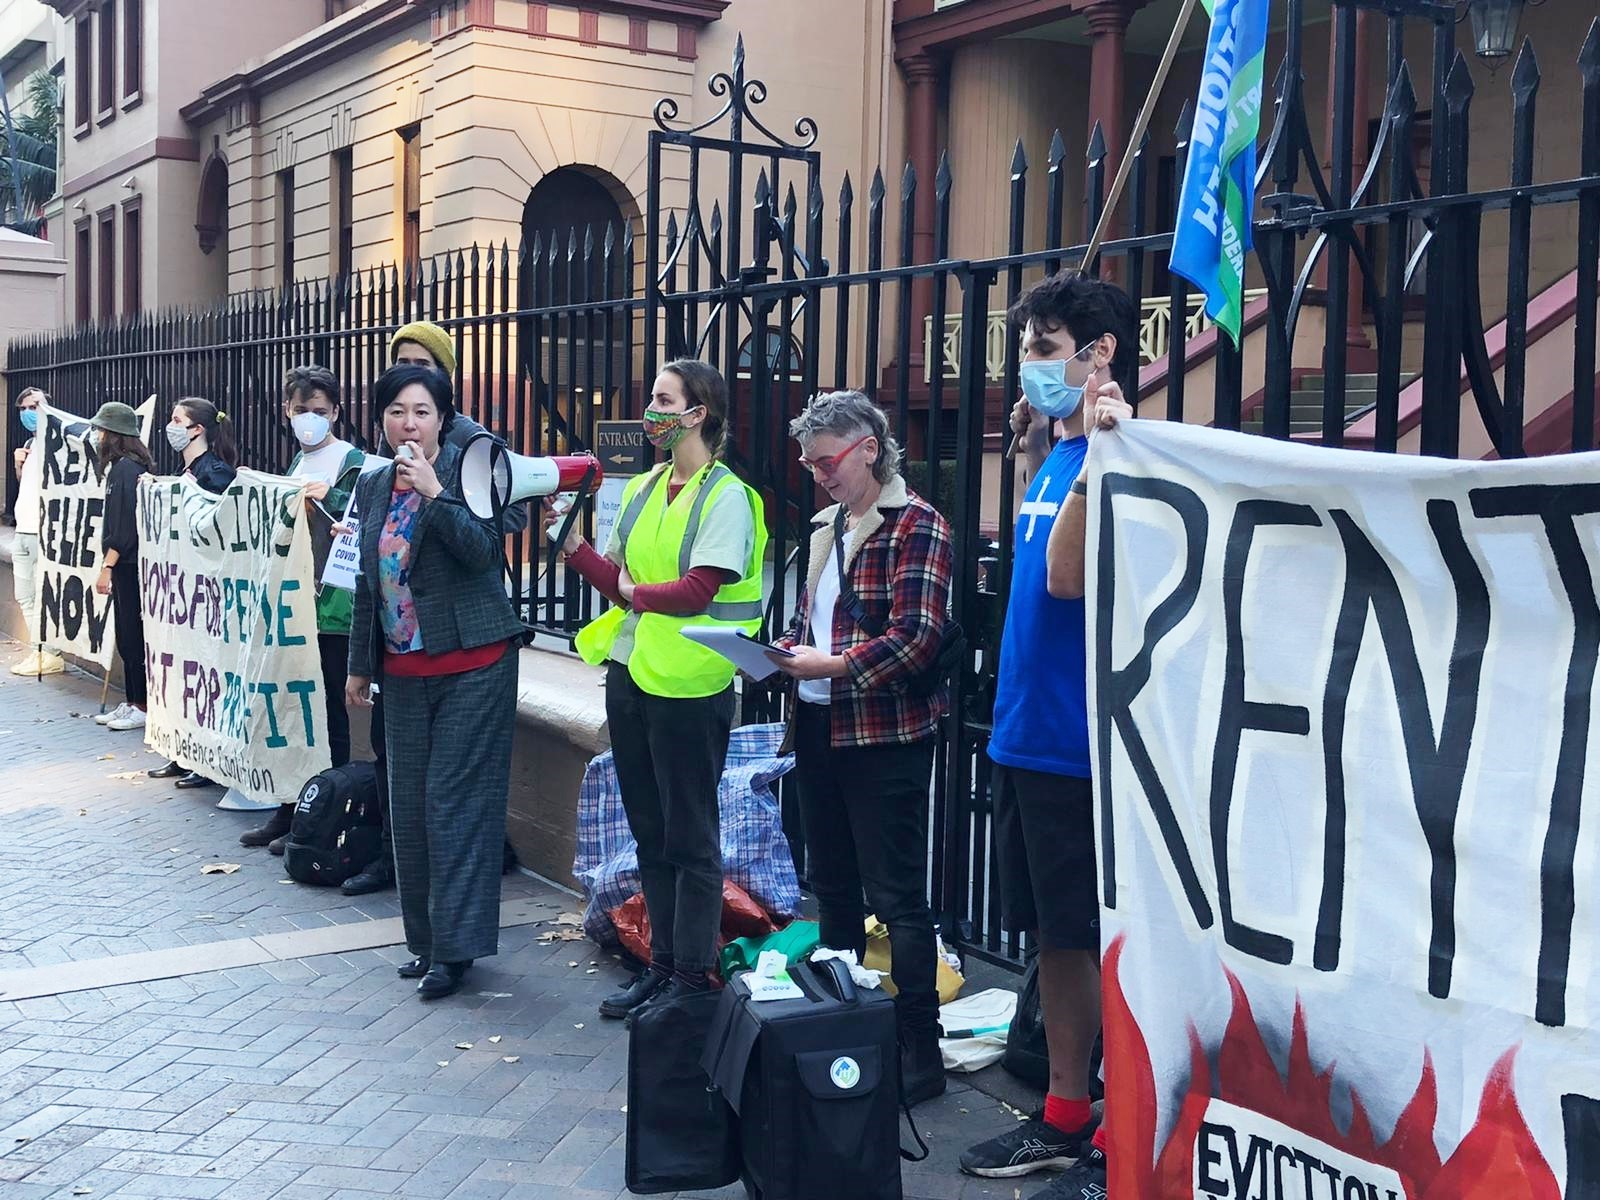 Jenny speaking into a megaphone whilst 8 other protesters hold signs about rent relief outside NSW Parliament.